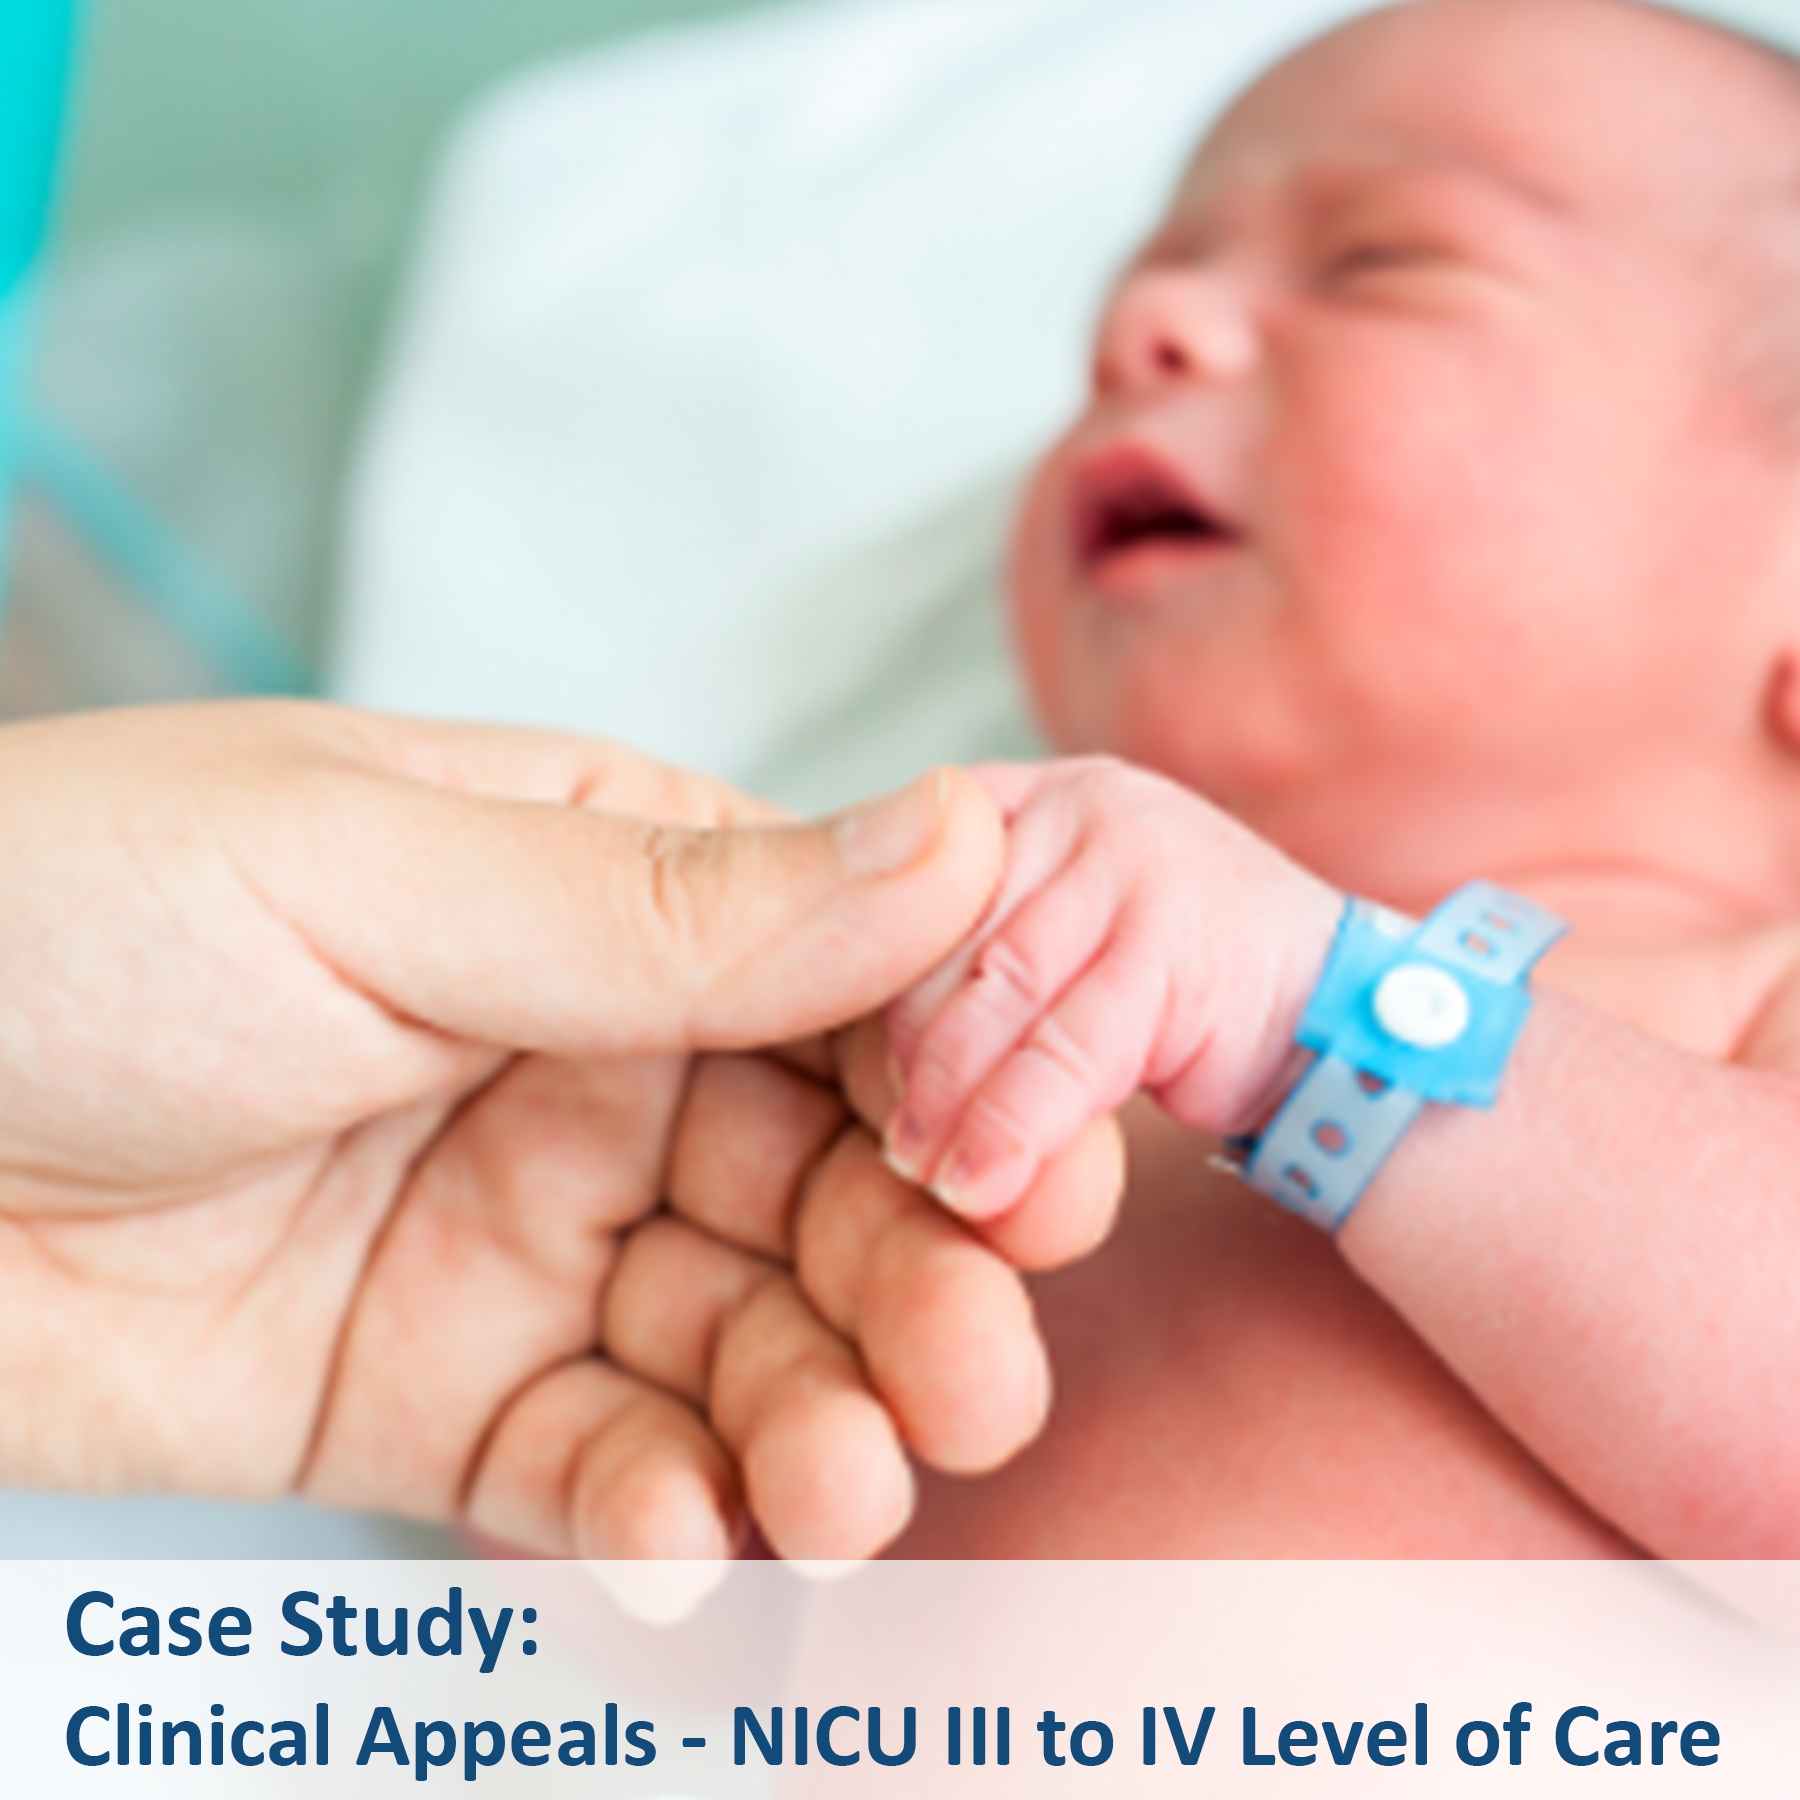 Case Study - Clinical Appeals - NICU III to IV Level of Care